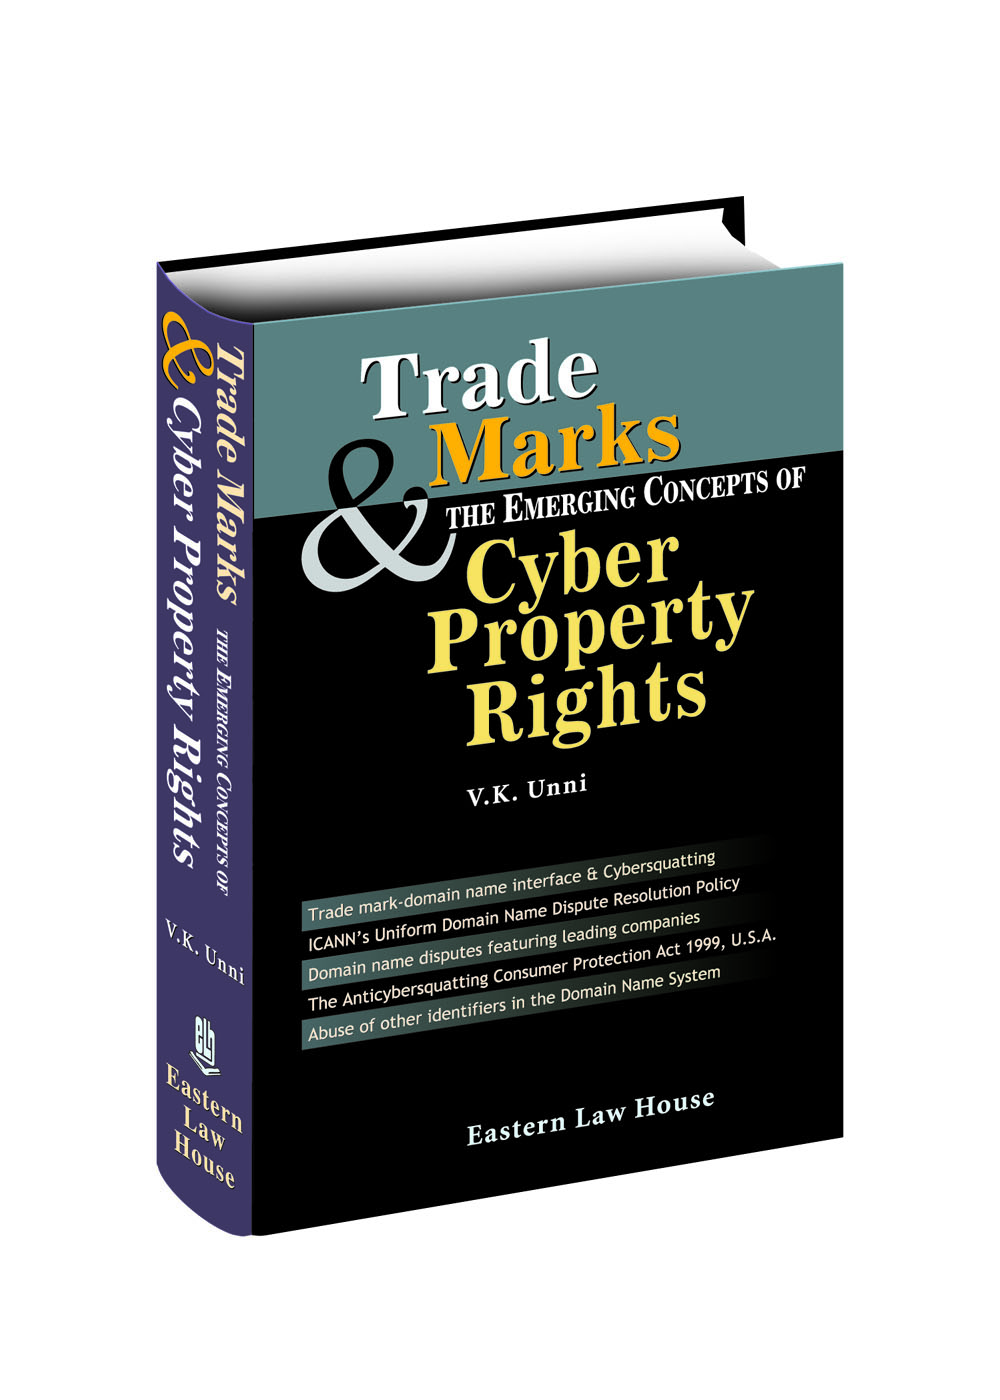 Trade Marks & the Emerging Concepts of Cyber Property Rights